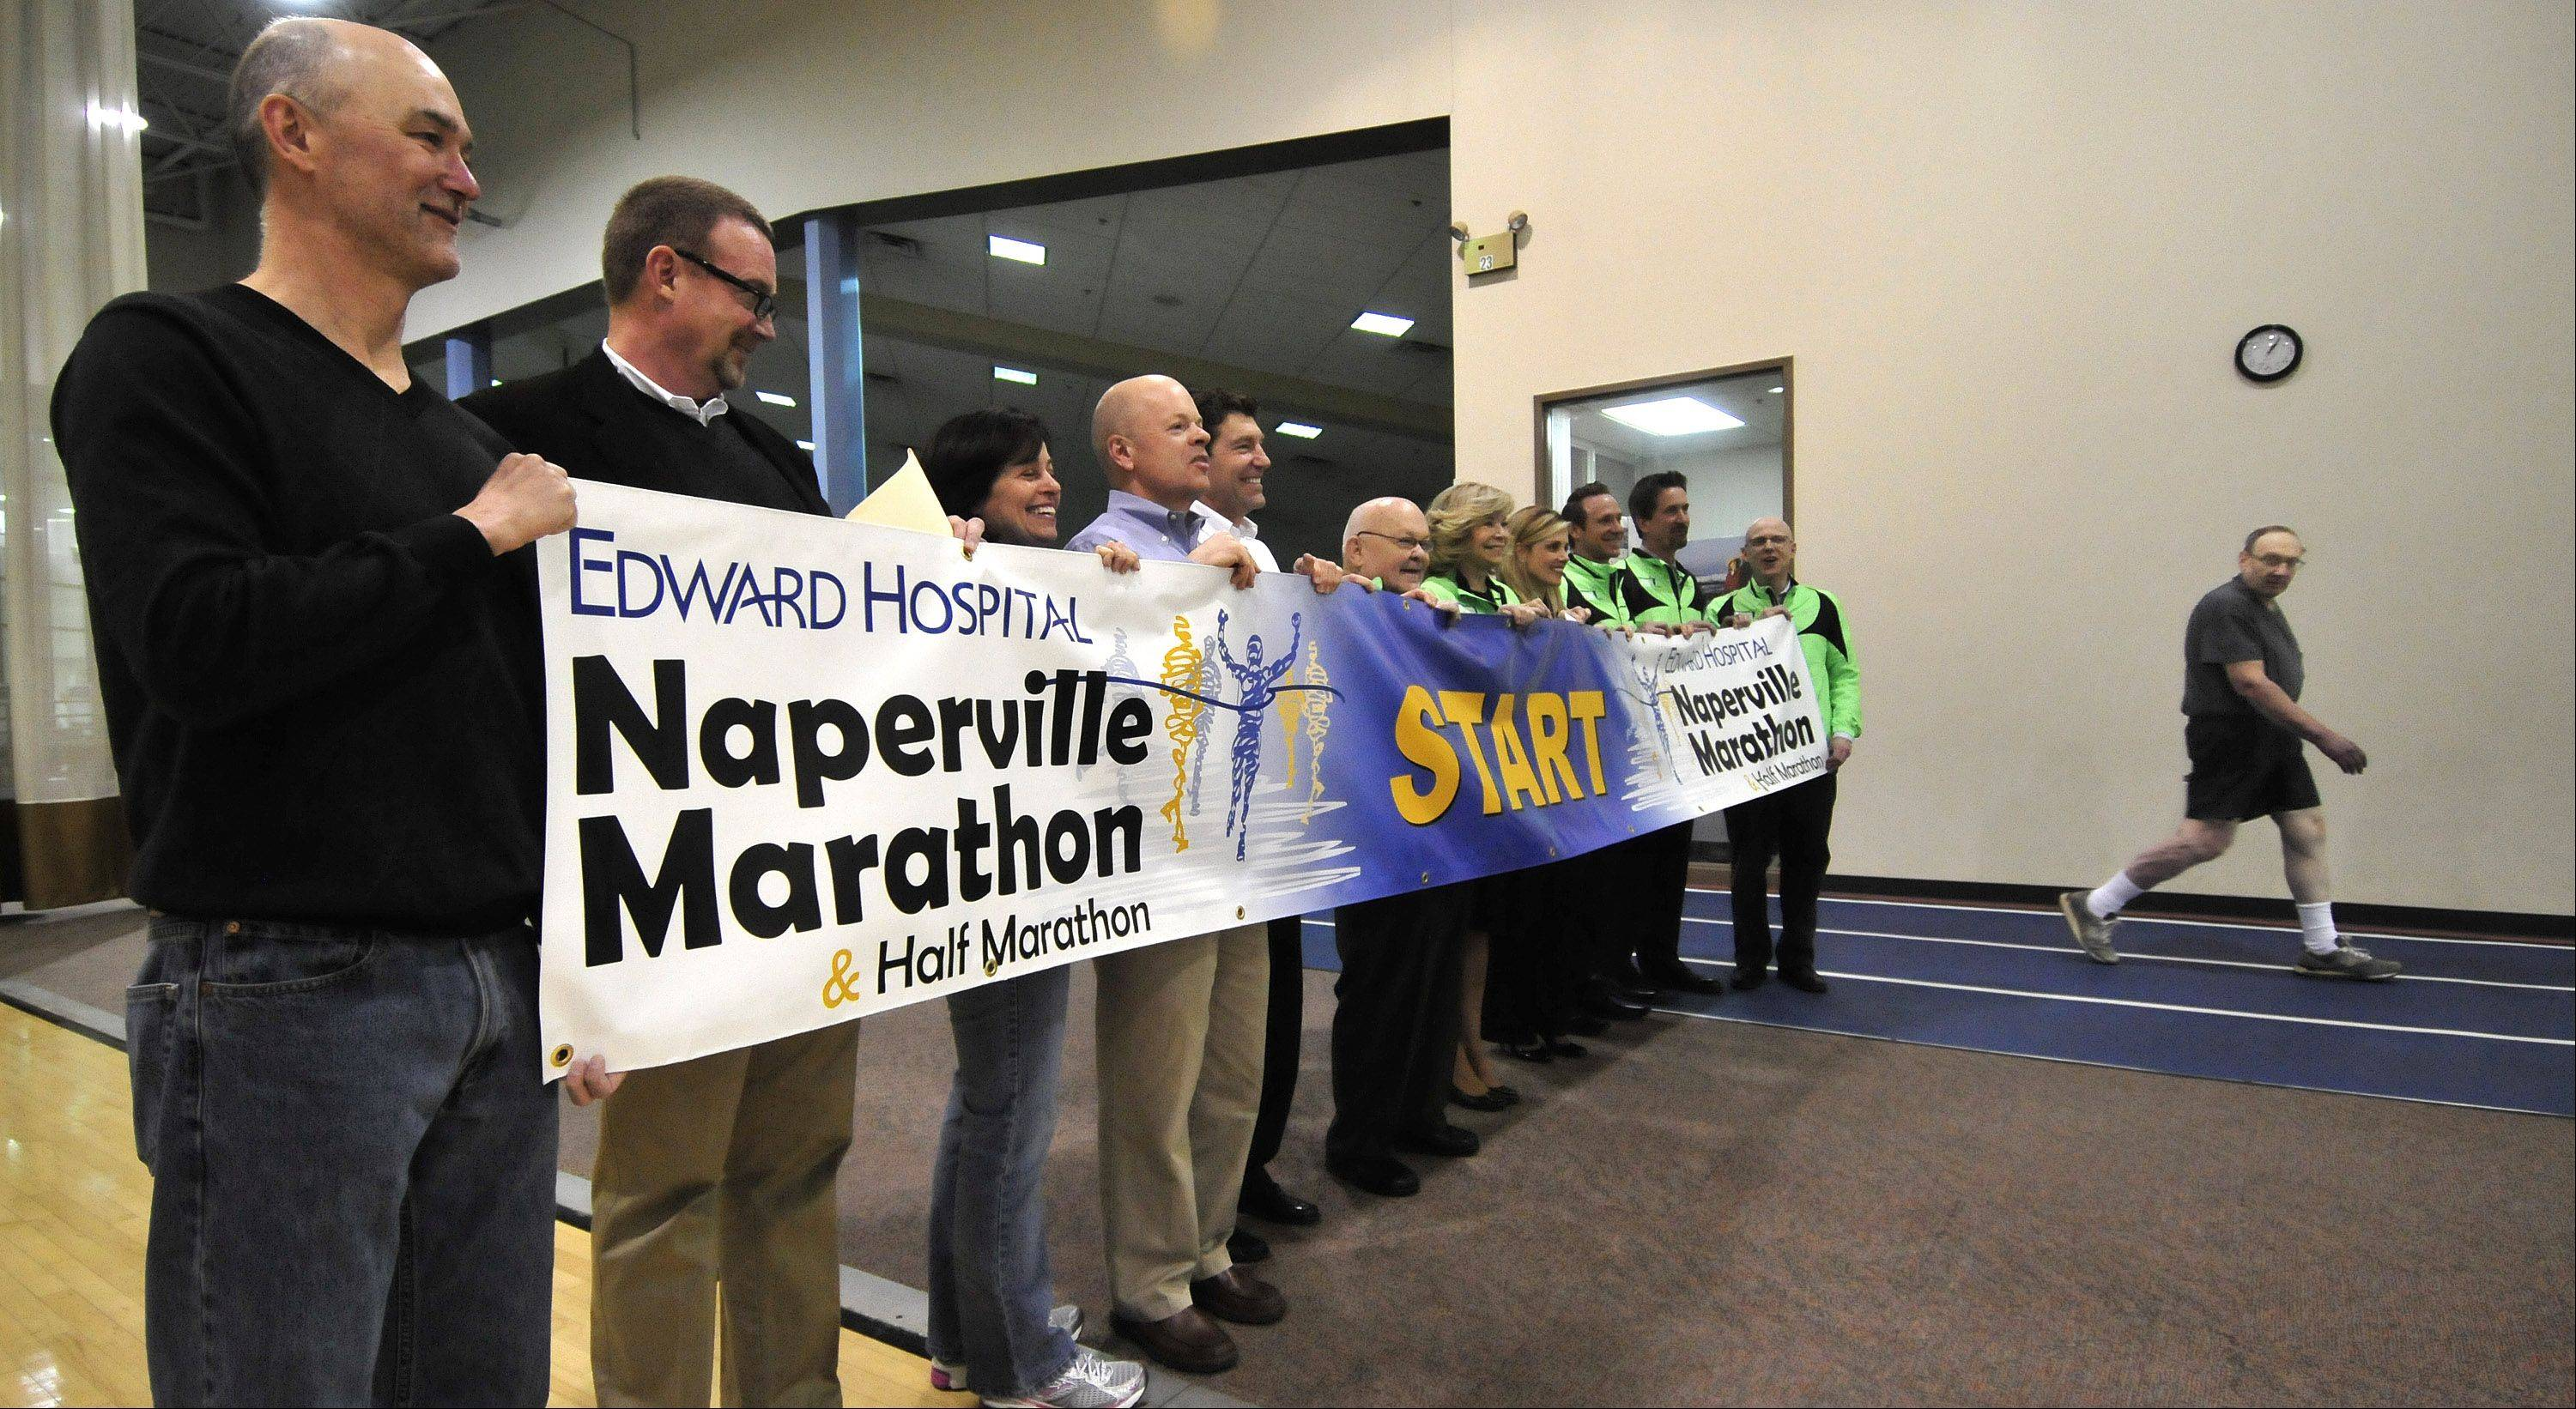 Edward Hospital is the title sponsor of the inaugural Naperville Marathon and Half Marathon, but other local businesses have gotten in on sponsorship as well, including Naperville Running Company and Whole Foods Naperville.